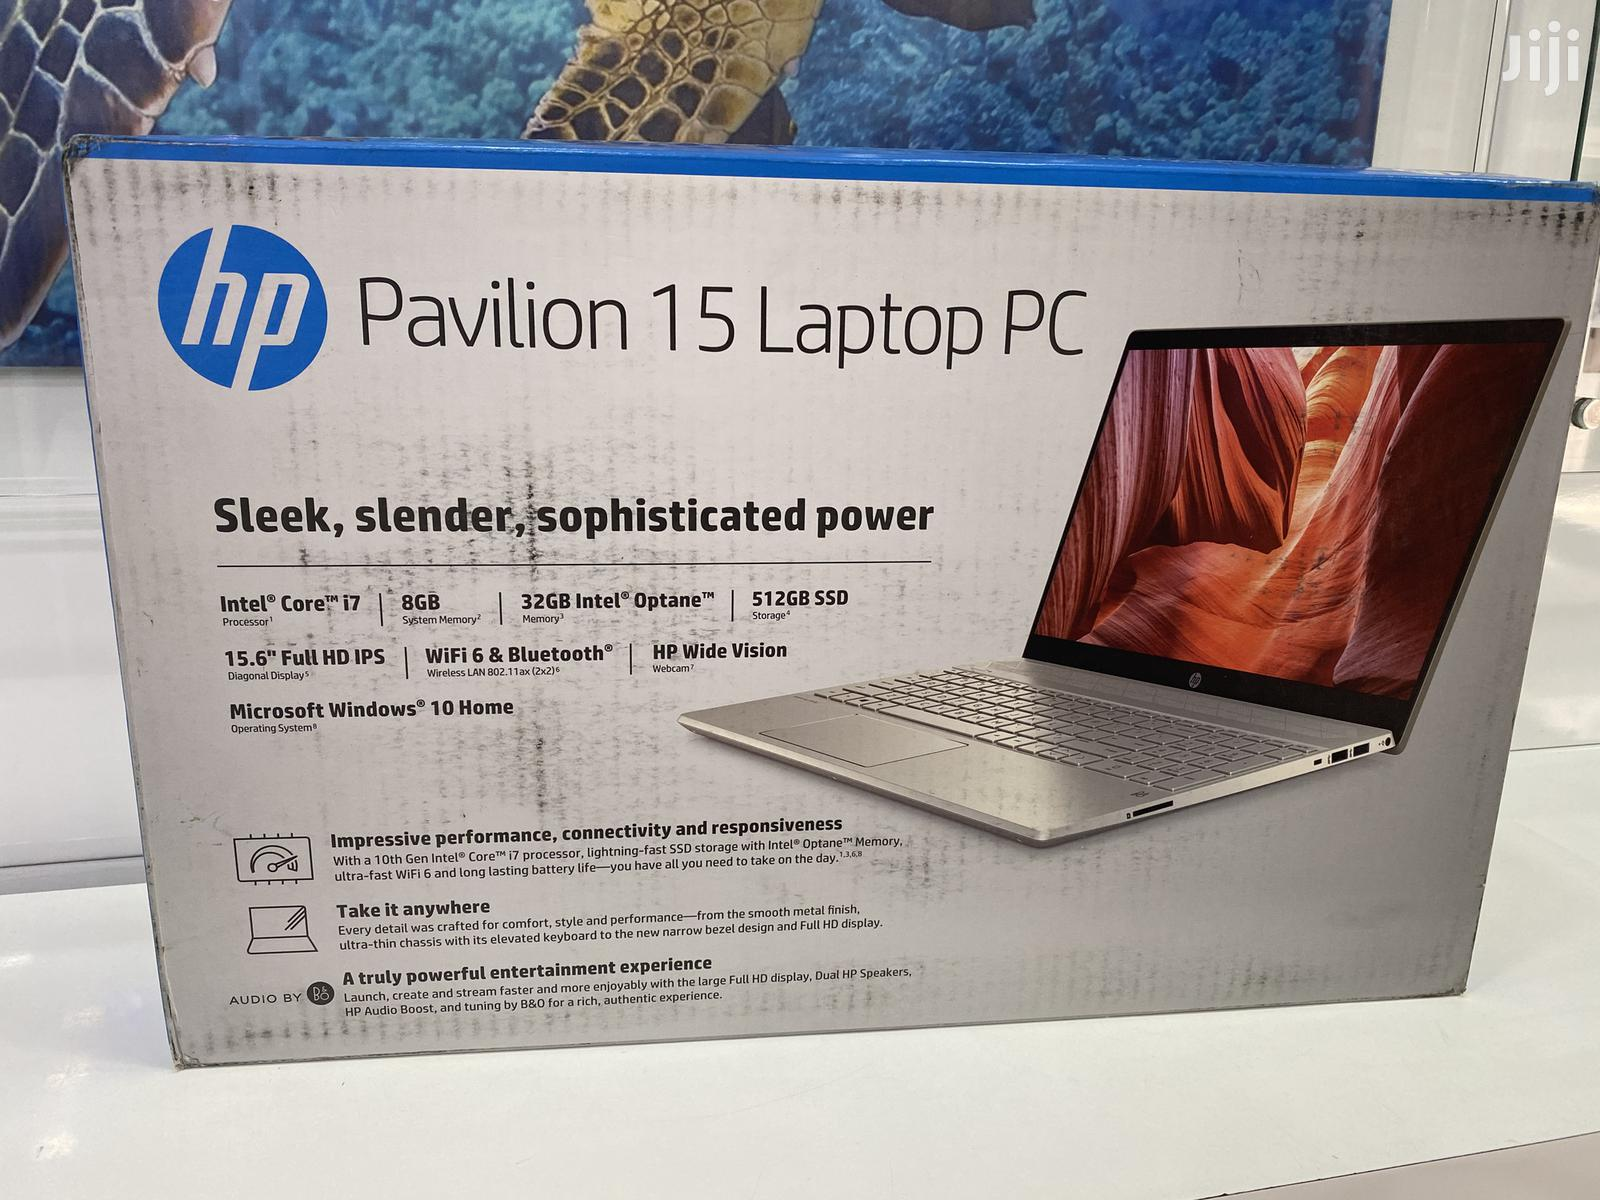 New Laptop HP Pavilion 15 8GB Intel Core i7 SSD 512GB | Laptops & Computers for sale in Kokomlemle, Greater Accra, Ghana